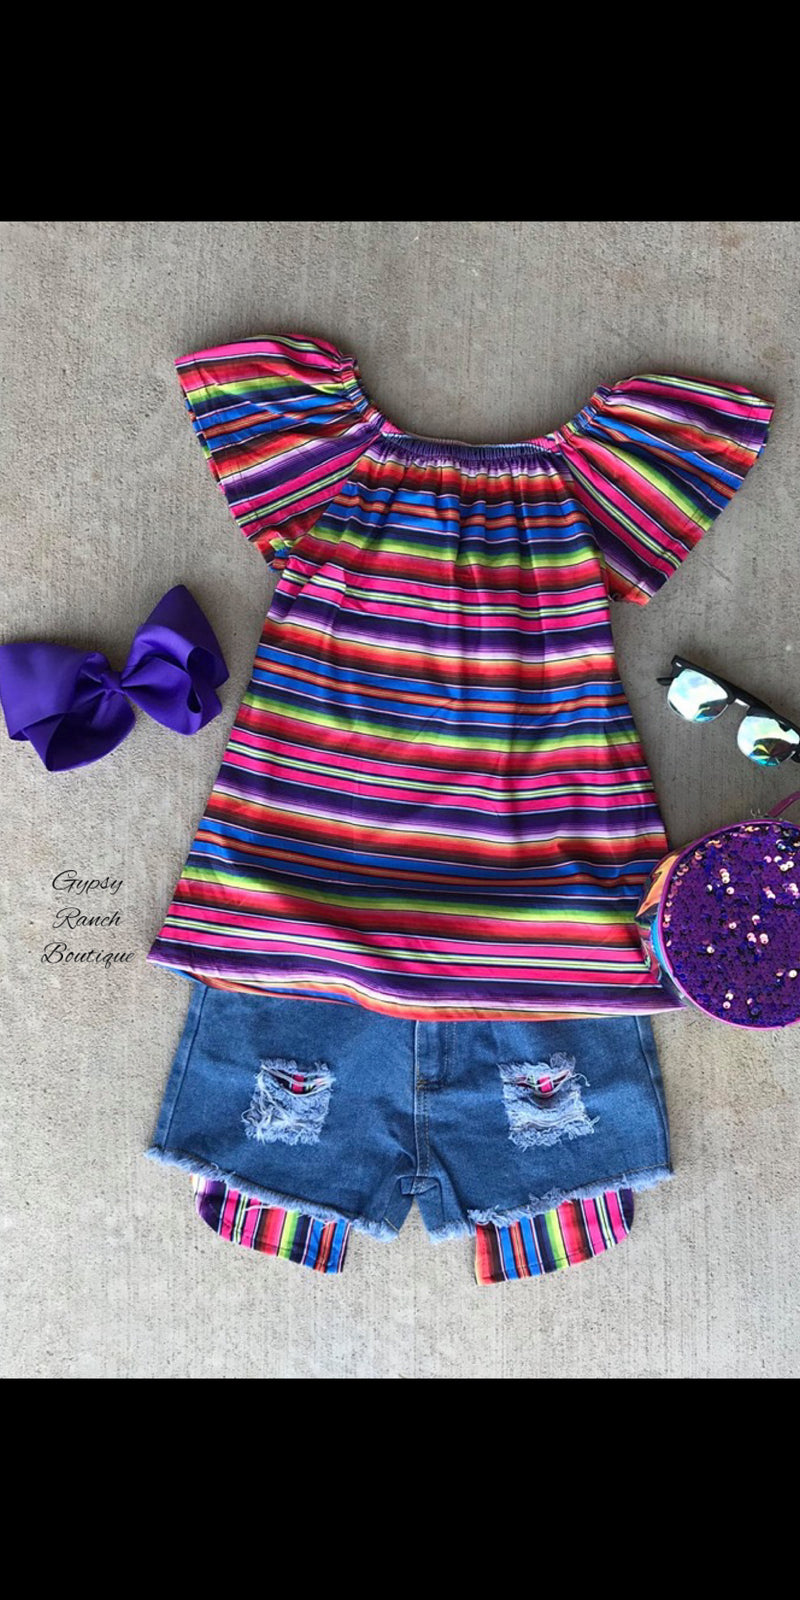 Wimberlee Serape Top & Short Set - Kids